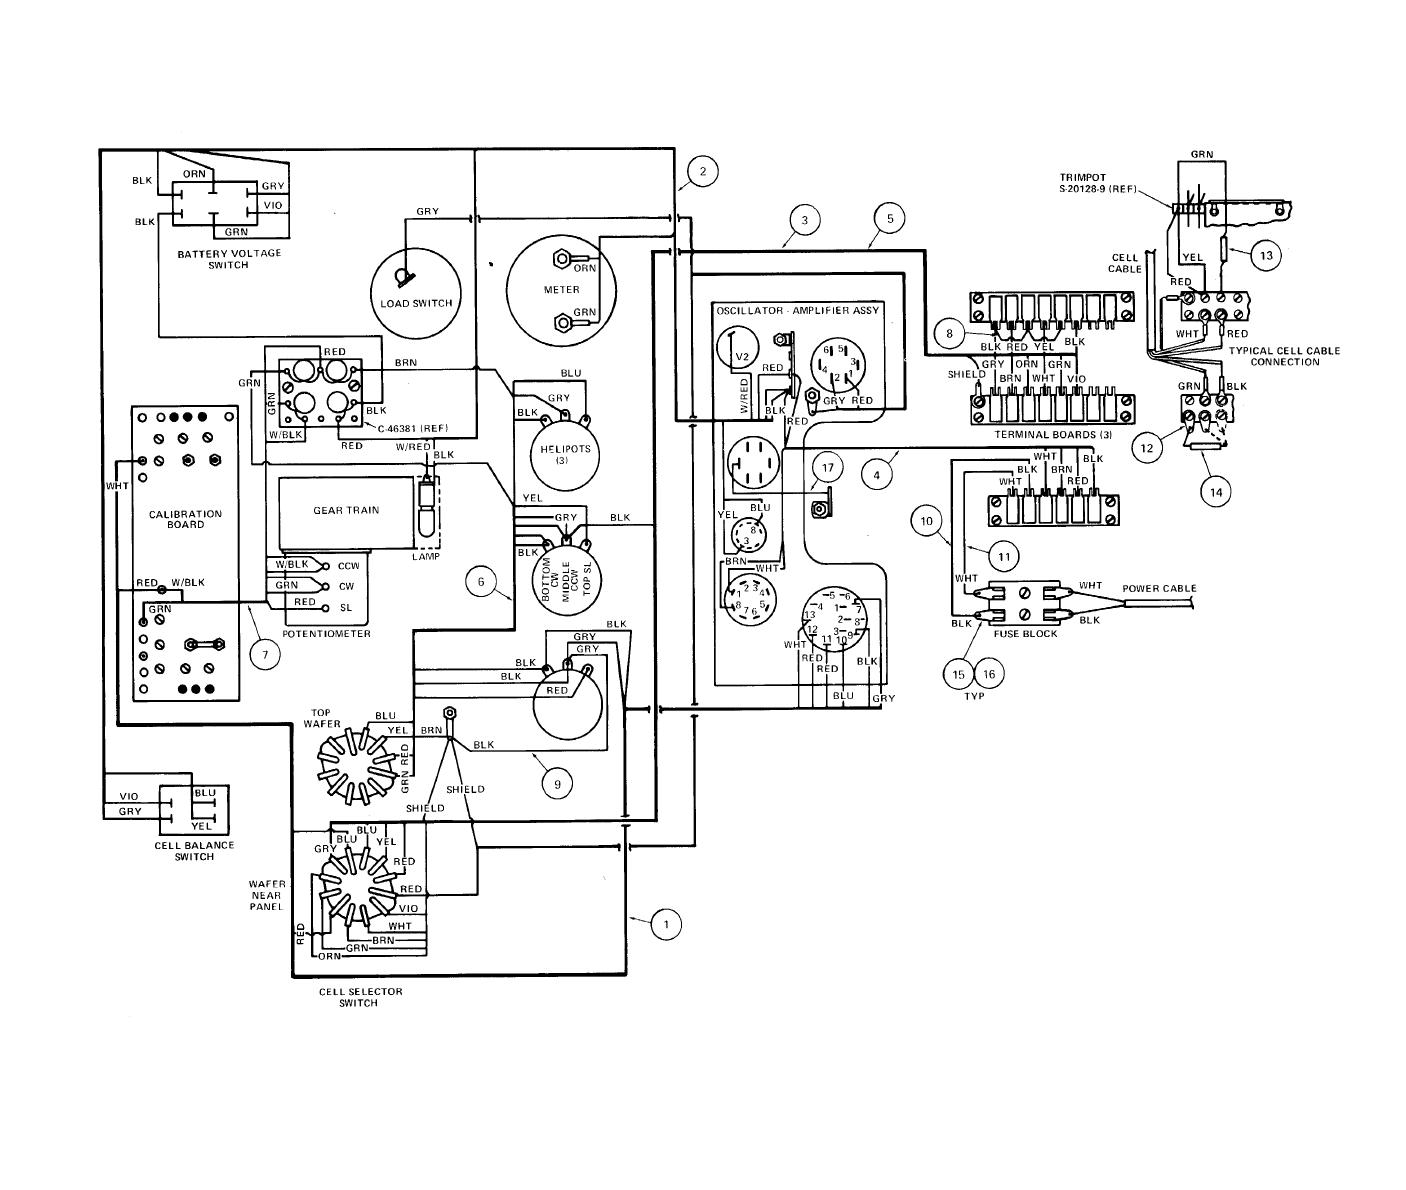 737 Electrical System Schematic